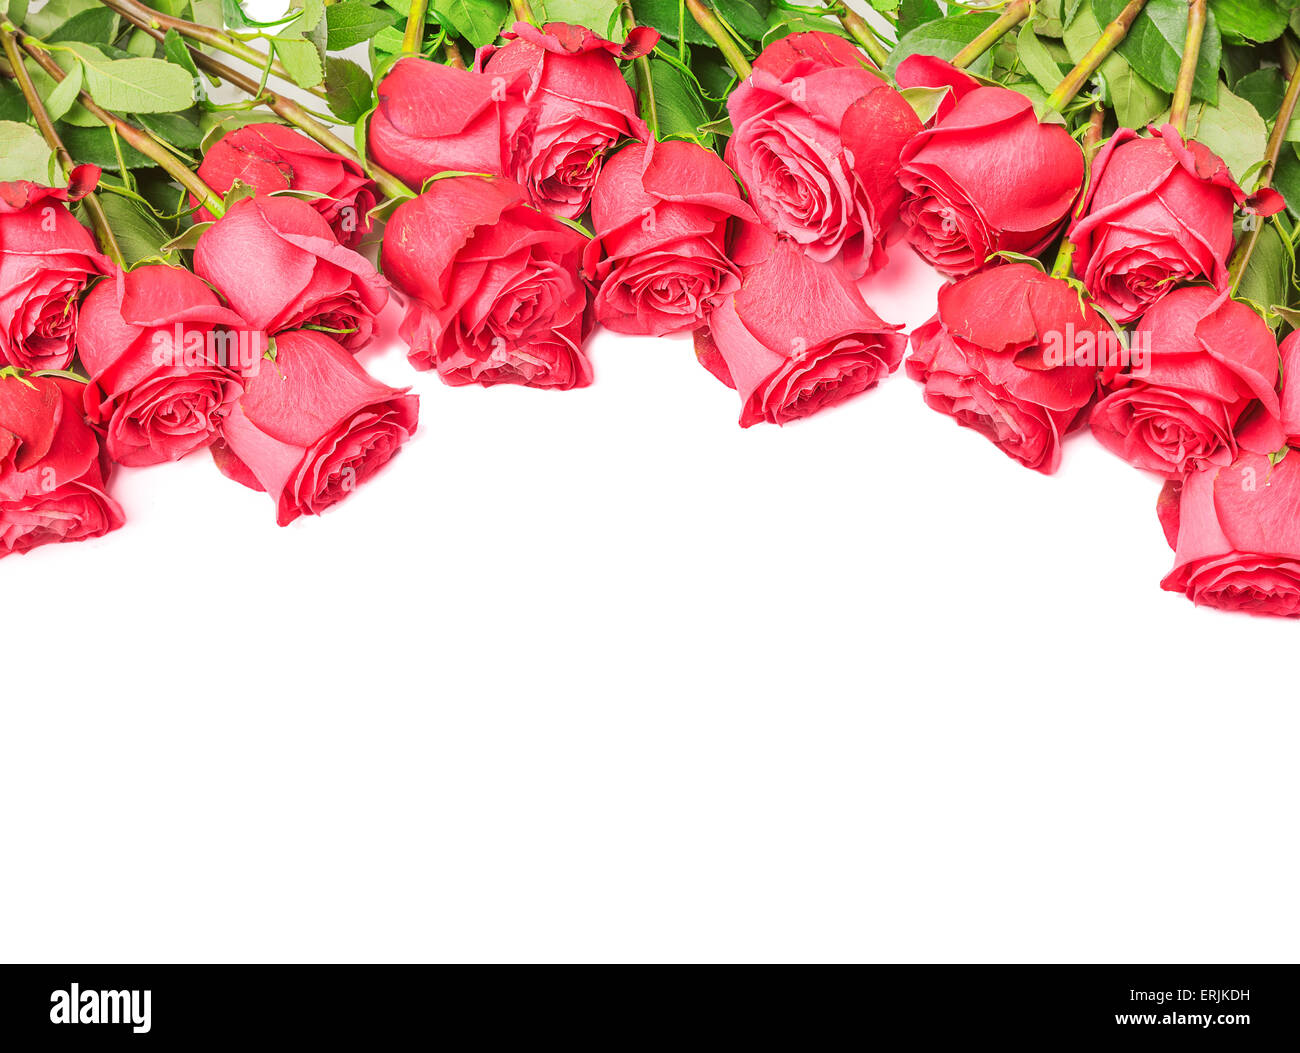 Border From Beautiful Pink Roses Isolated On White